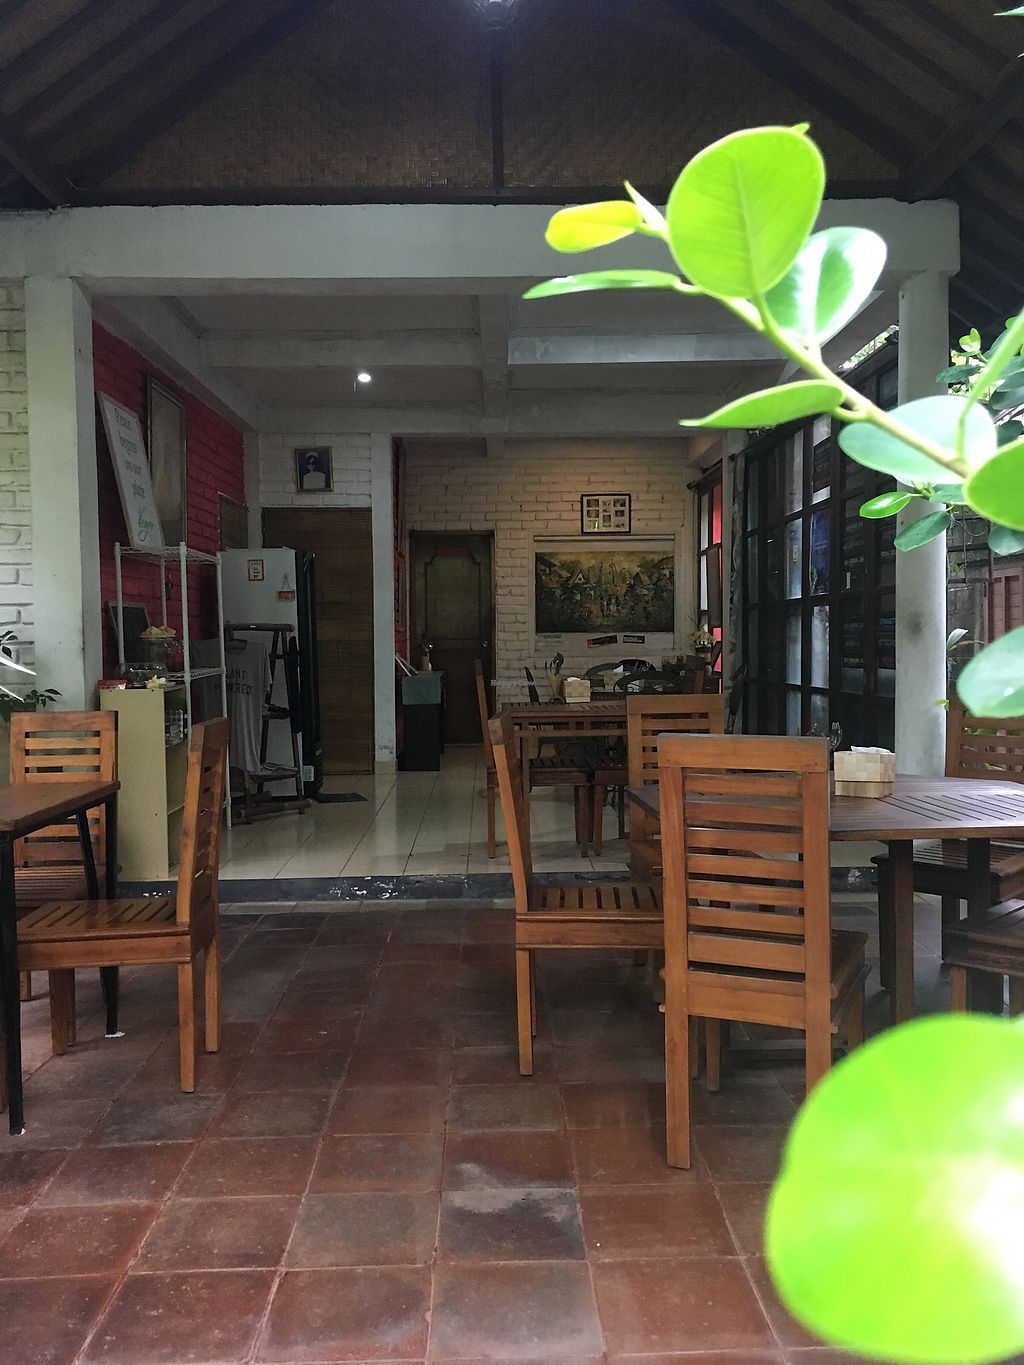 "Photo of Tasty Vegan - Seminyak  by <a href=""/members/profile/BastianSteinbach"">BastianSteinbach</a> <br/>Seating area inside <br/> March 7, 2018  - <a href='/contact/abuse/image/29016/367744'>Report</a>"